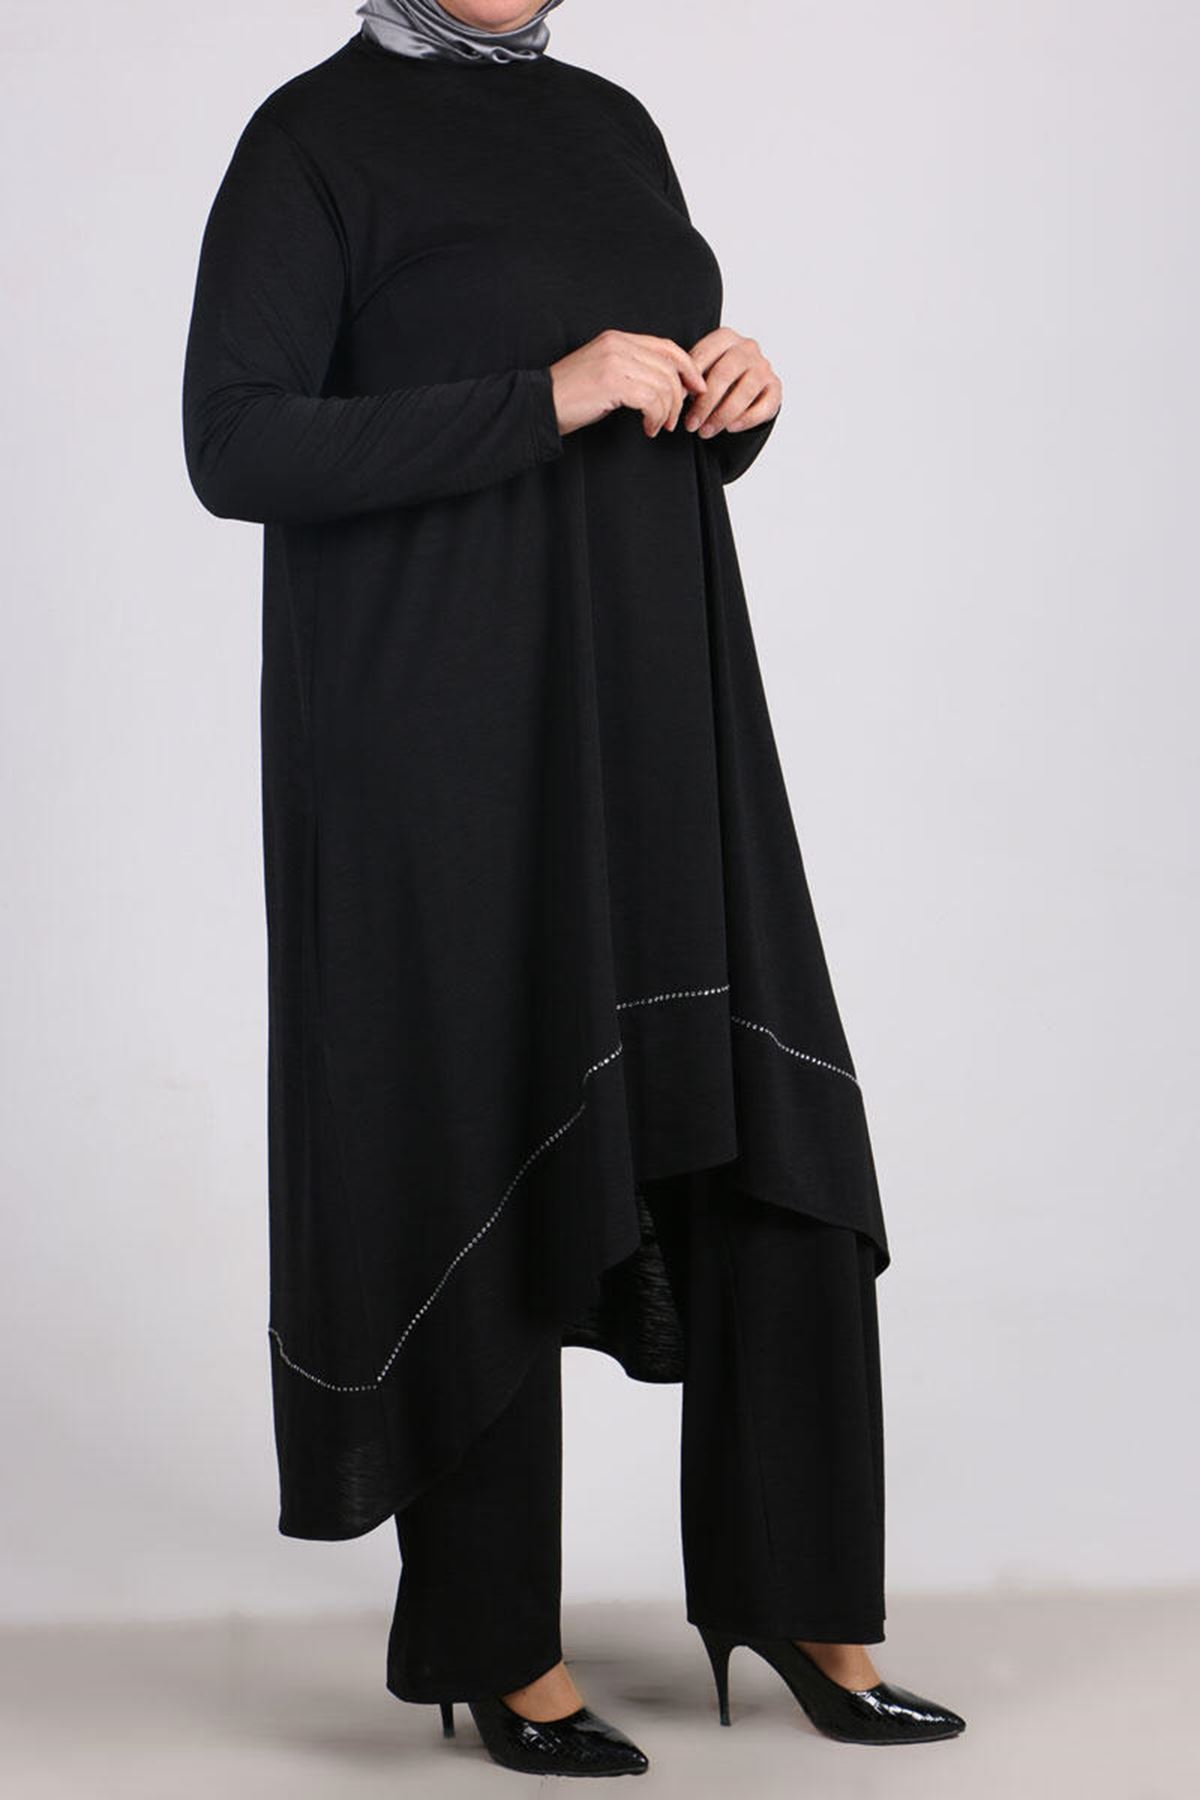 7675 Plus Size Two Piece Set with Tunic and Pants- Black